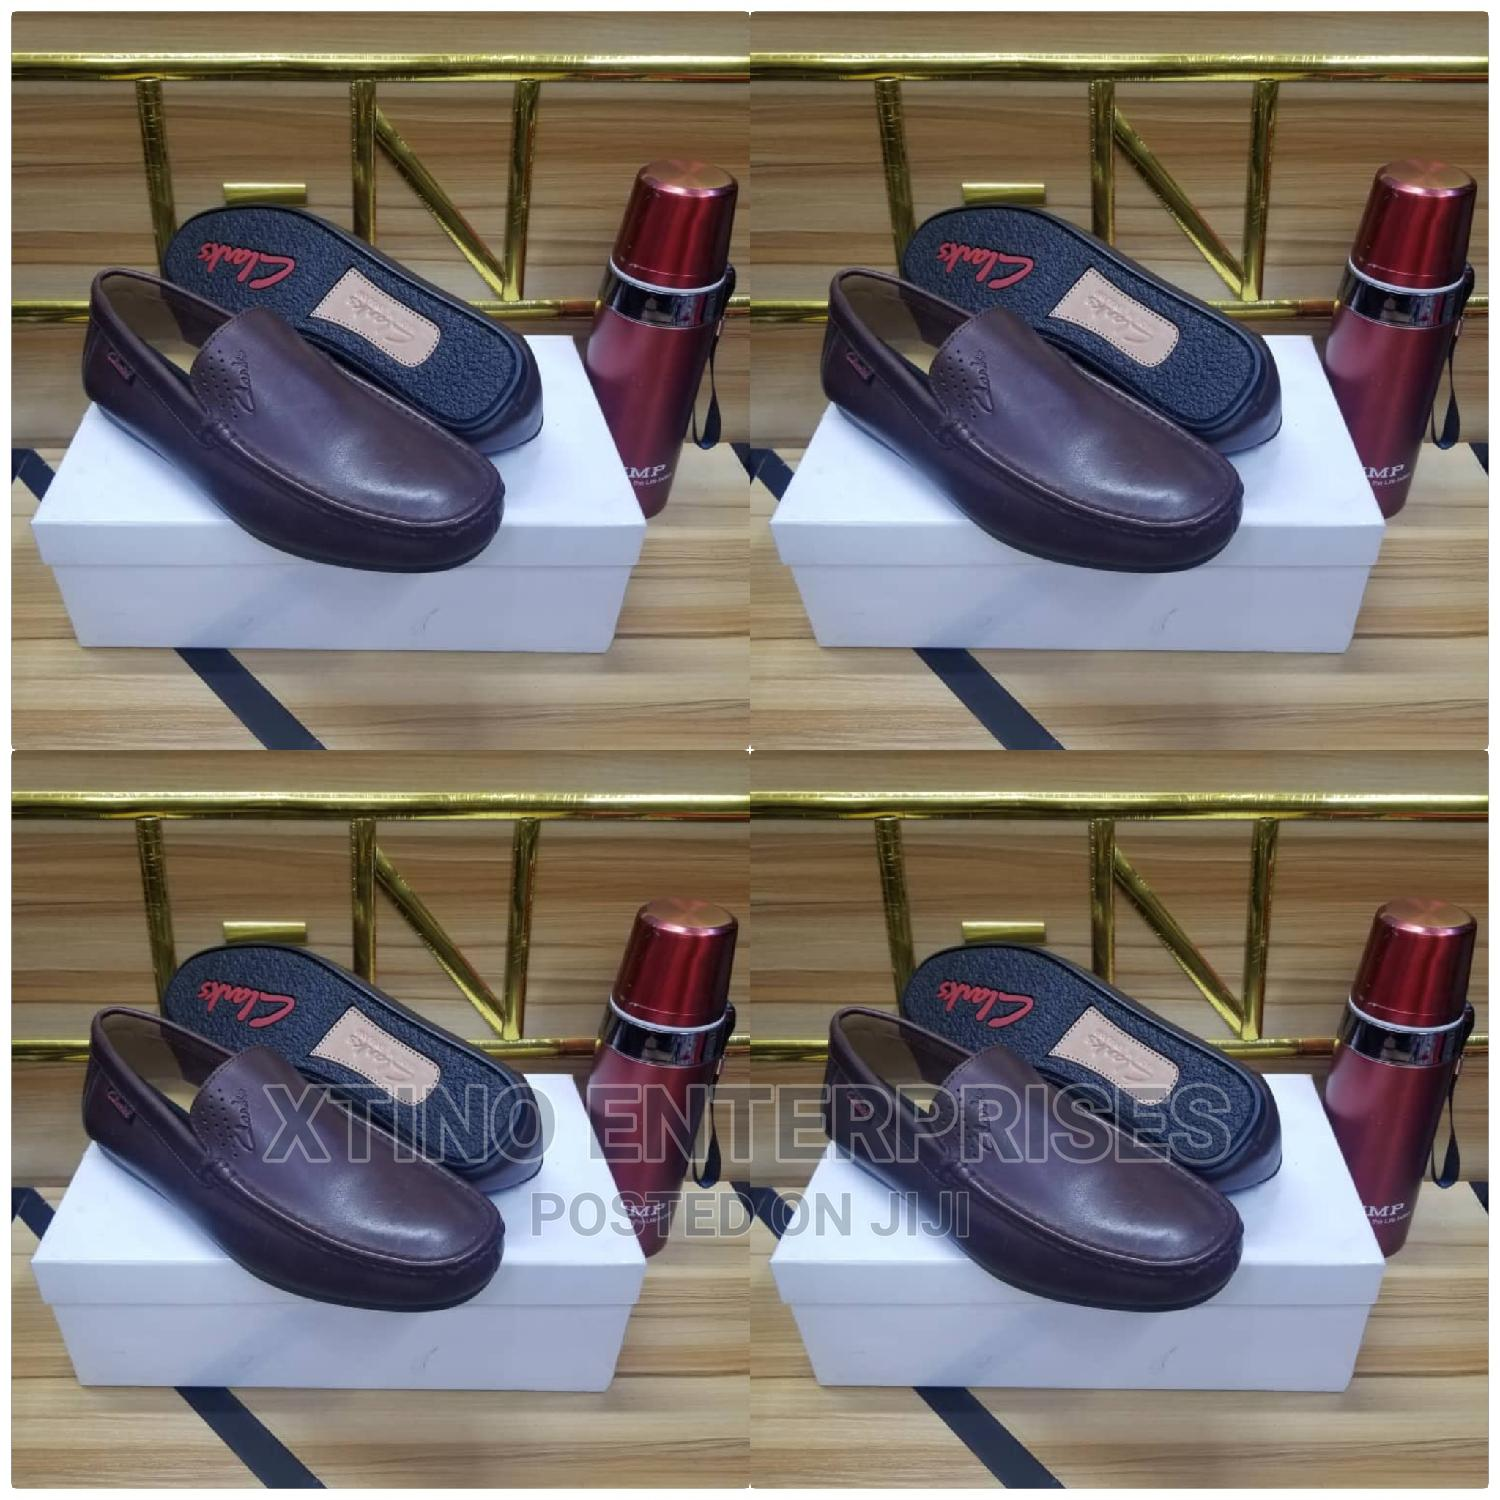 Clarks Loafers Shoe Original | Shoes for sale in Surulere, Lagos State, Nigeria